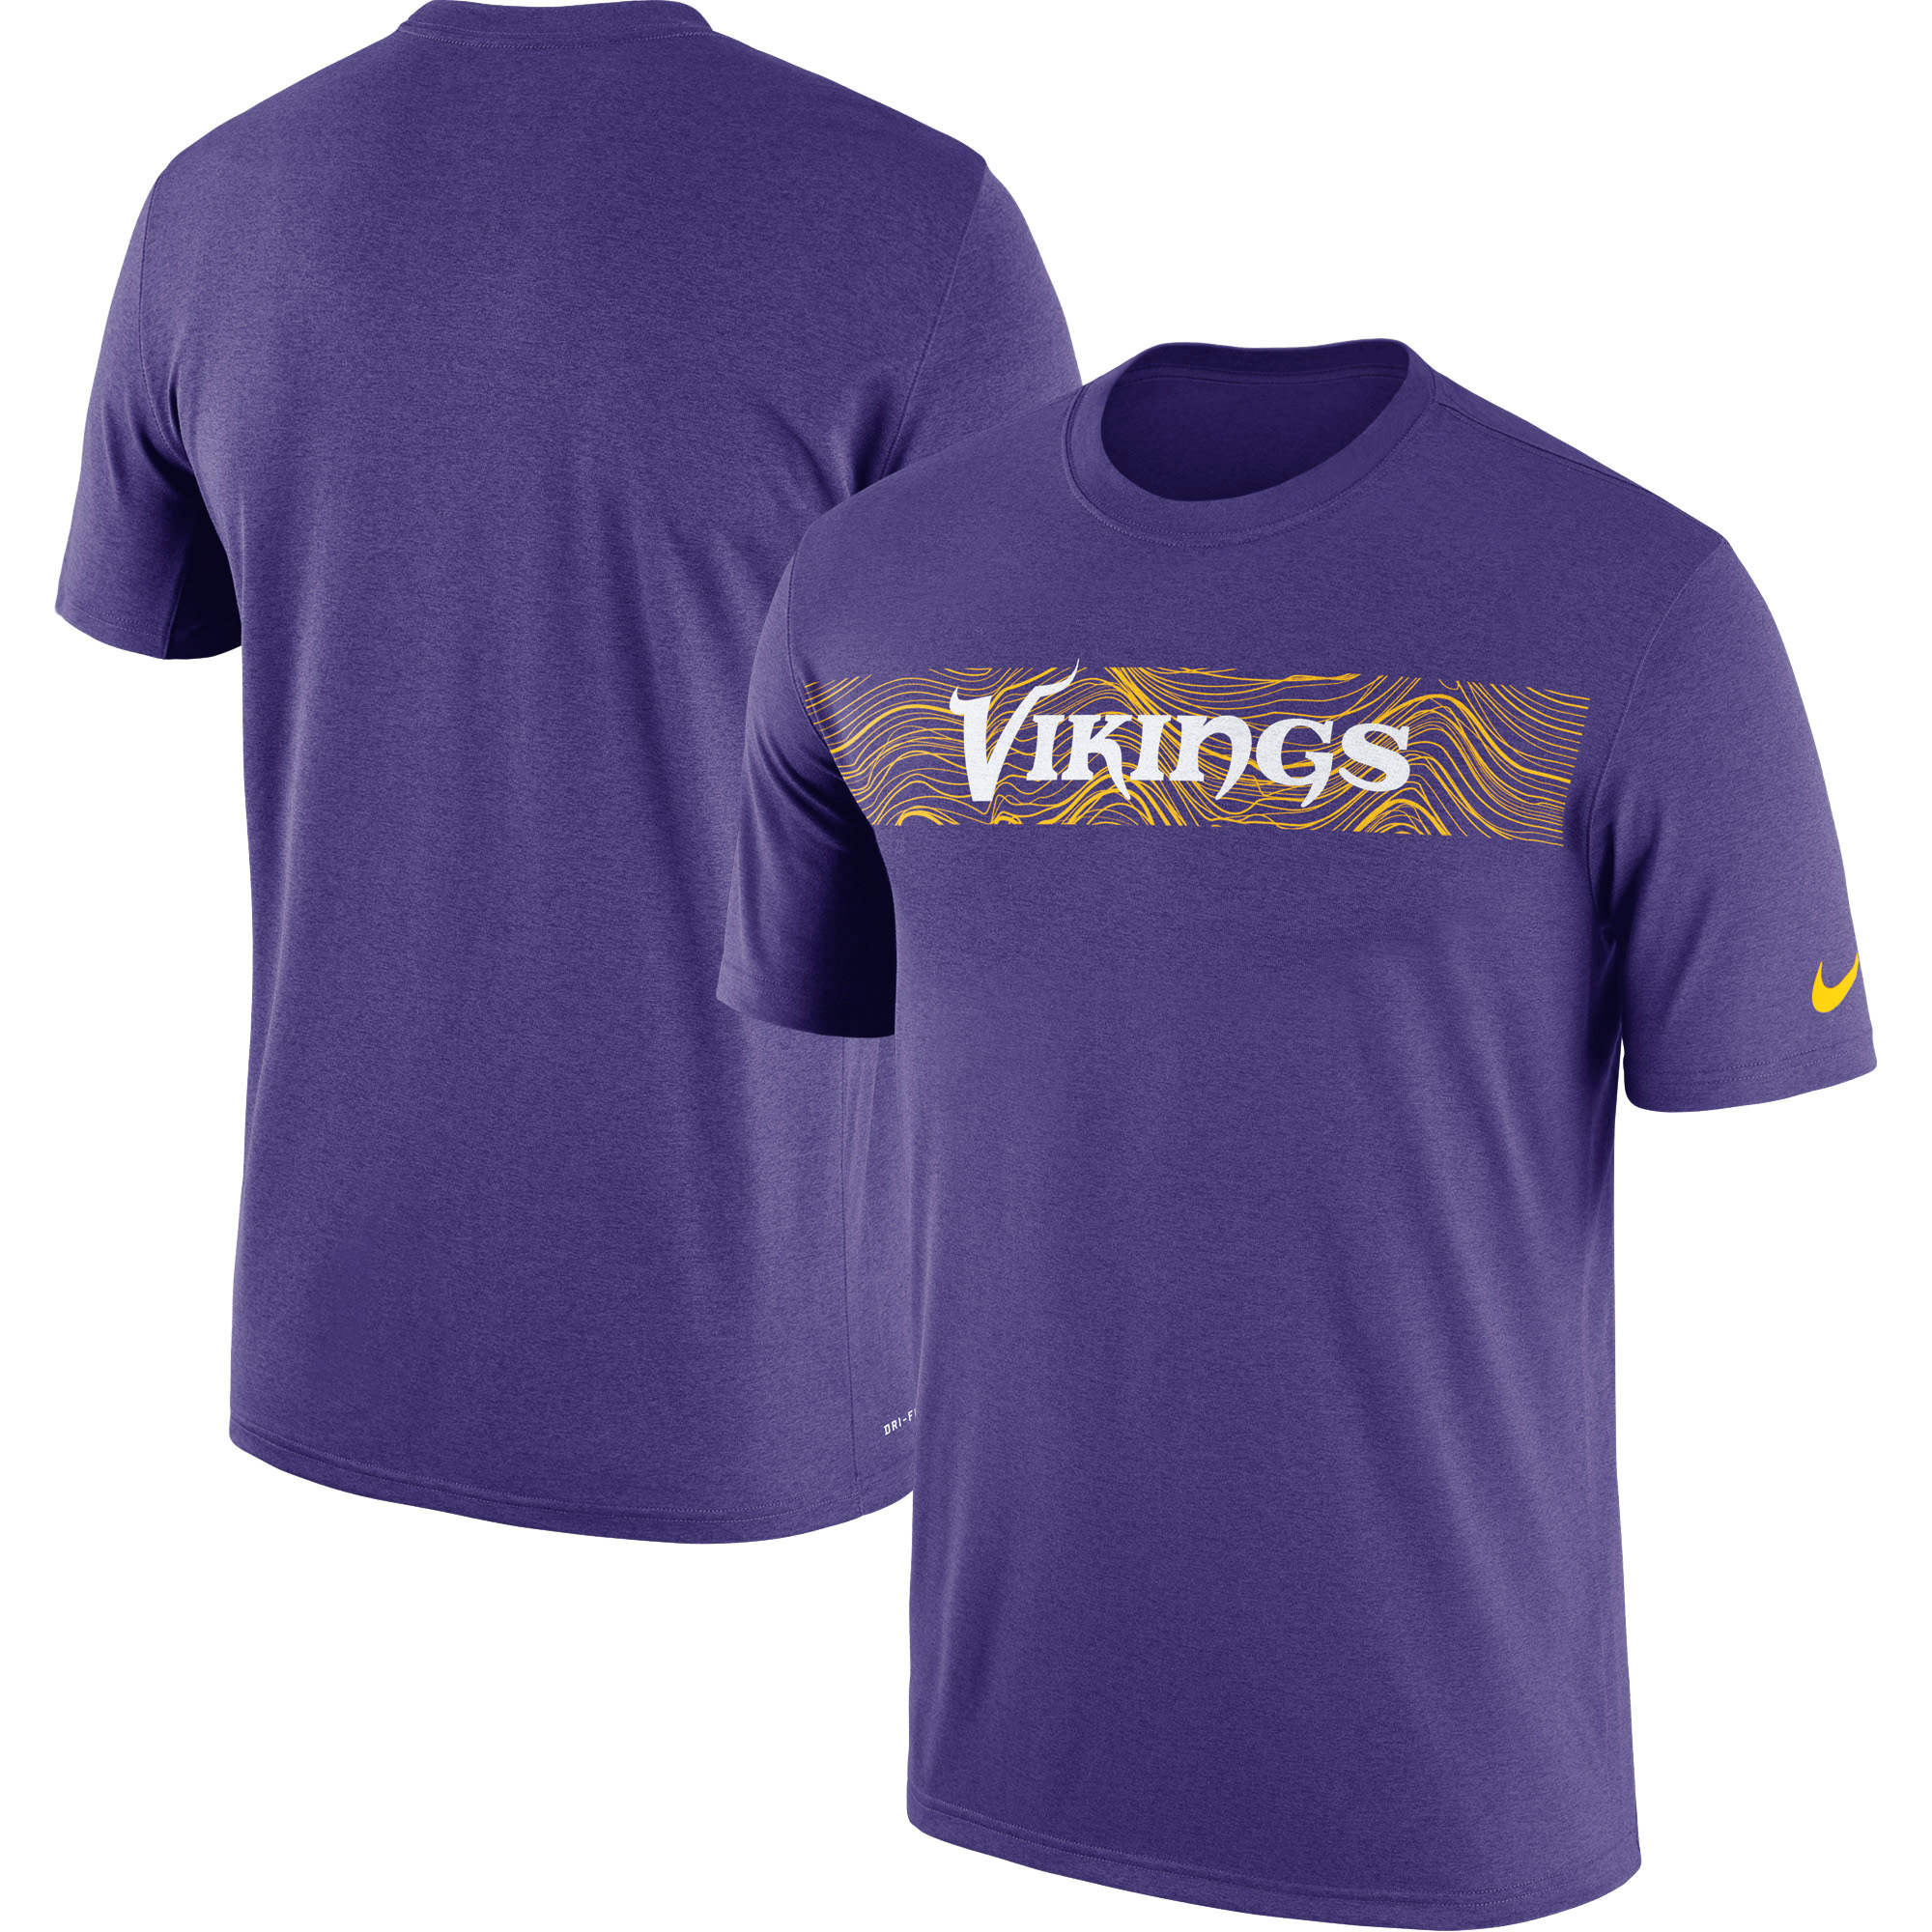 Minnesota Vikings Nike Sideline Seismic Legend Performance T-Shirt - Purple